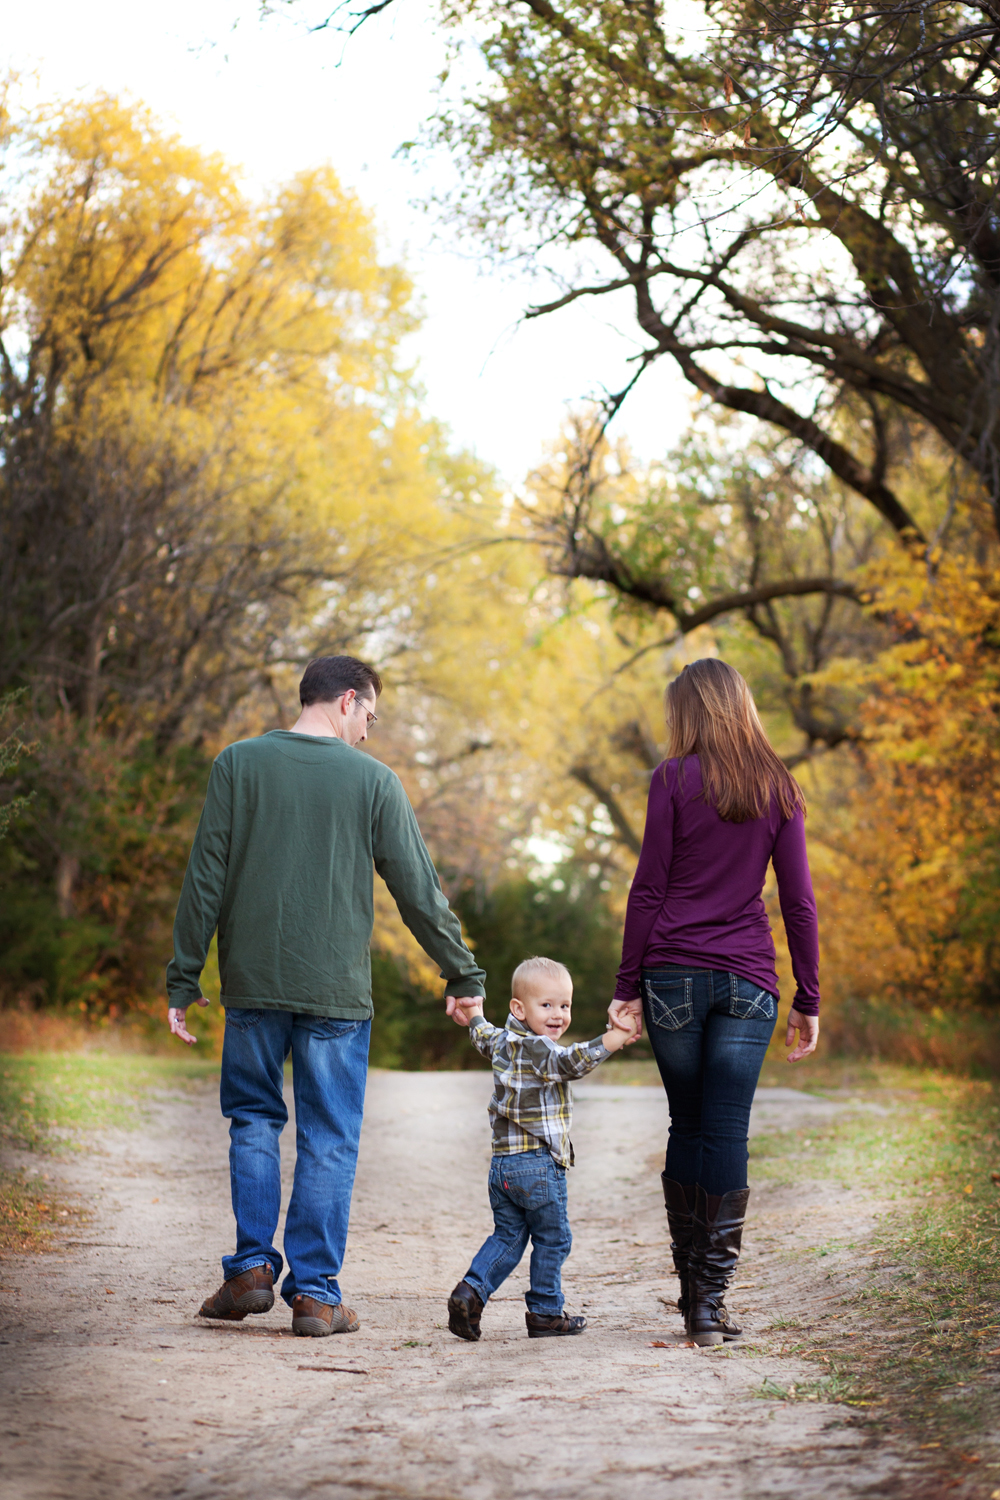 Russtanna_Photography_kearney_nebraska_natural_light_photographer_newborn_senior_family_engagement  (13).jpg